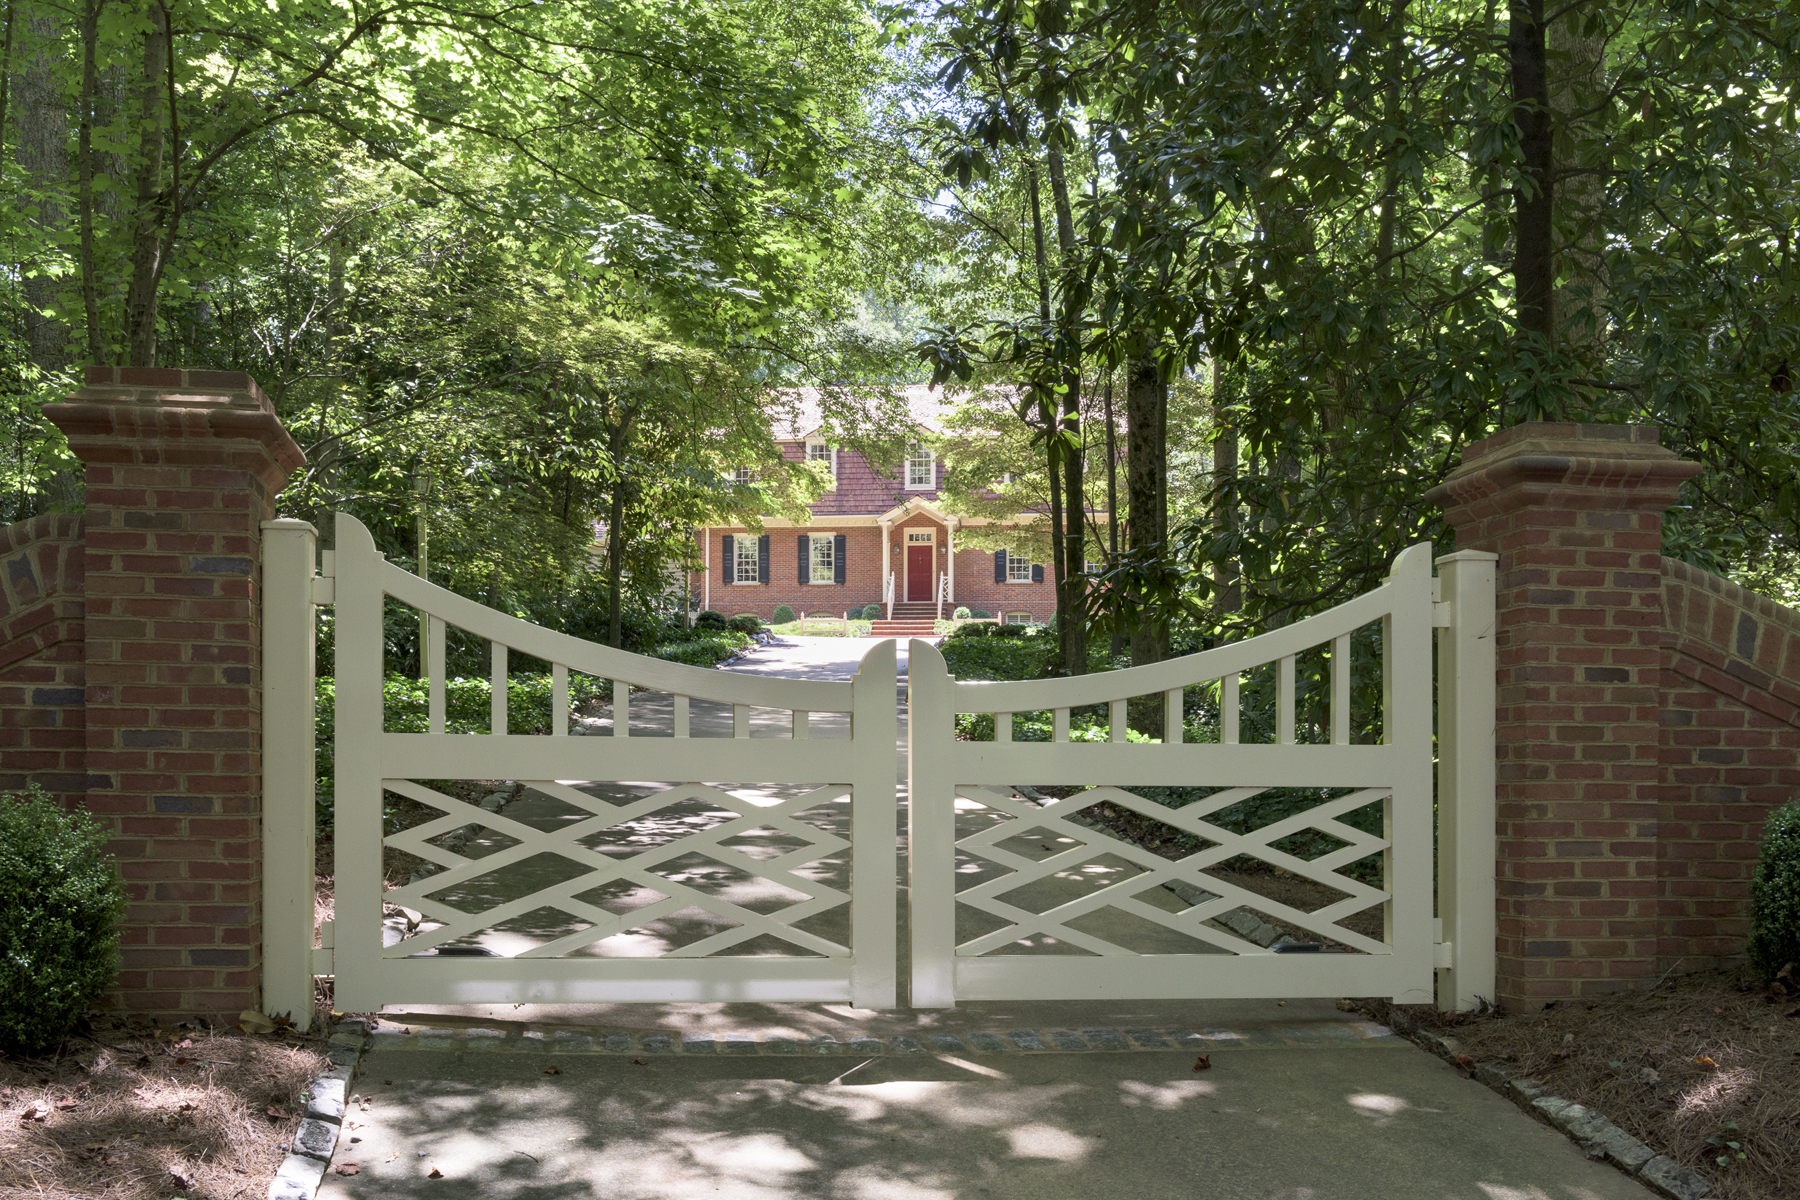 Maison unifamiliale pour l Vente à Charming Custom Built Gated Virginia Tidewater Estate 110 Austell Way NW Buckhead, Atlanta, Georgia, 30305 États-Unis